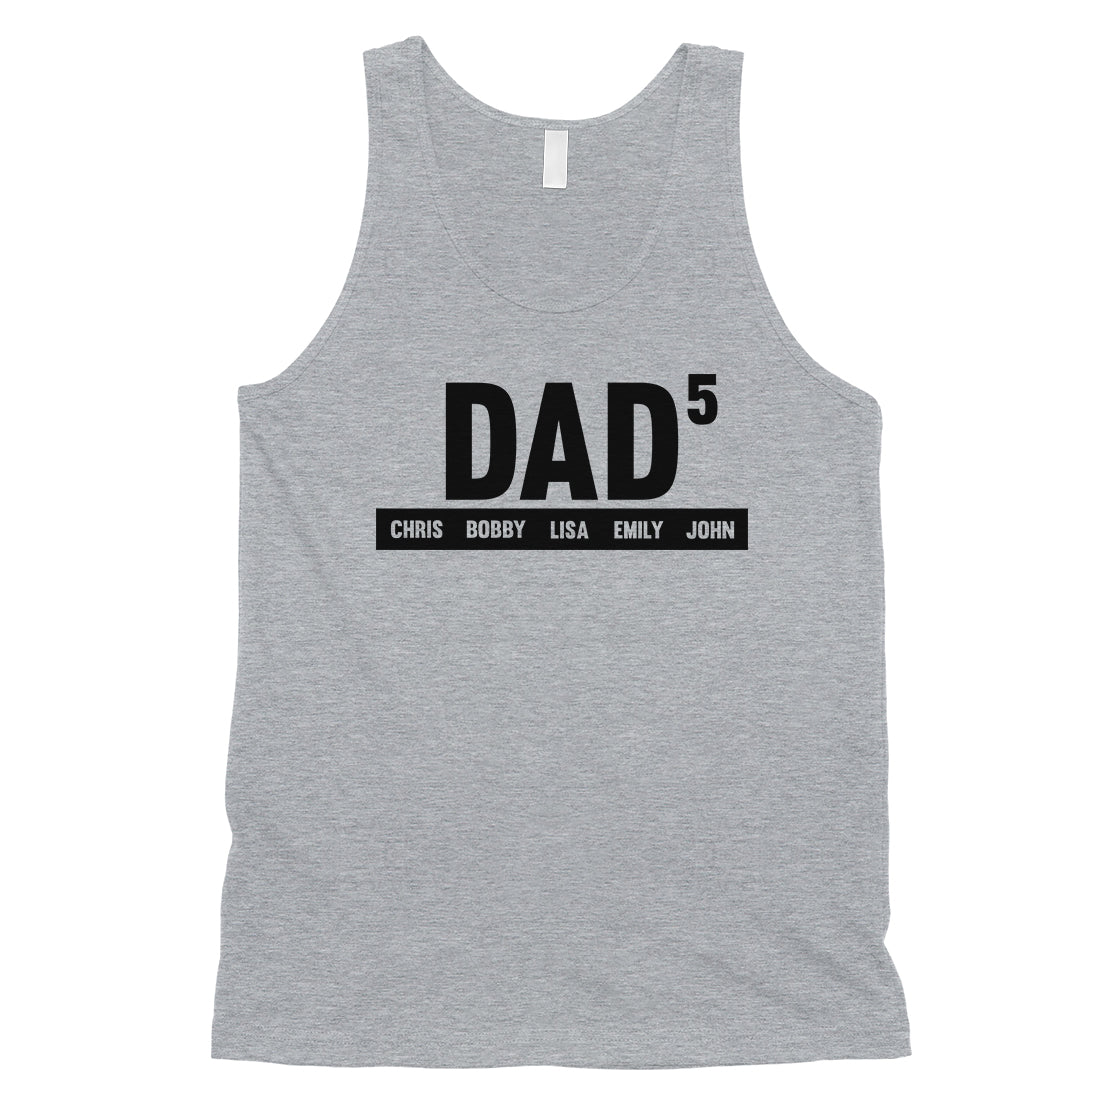 46cc02d9f19c3 Dad Number Of Children Custom Mens Personalized Tank Tops - 365 IN ...